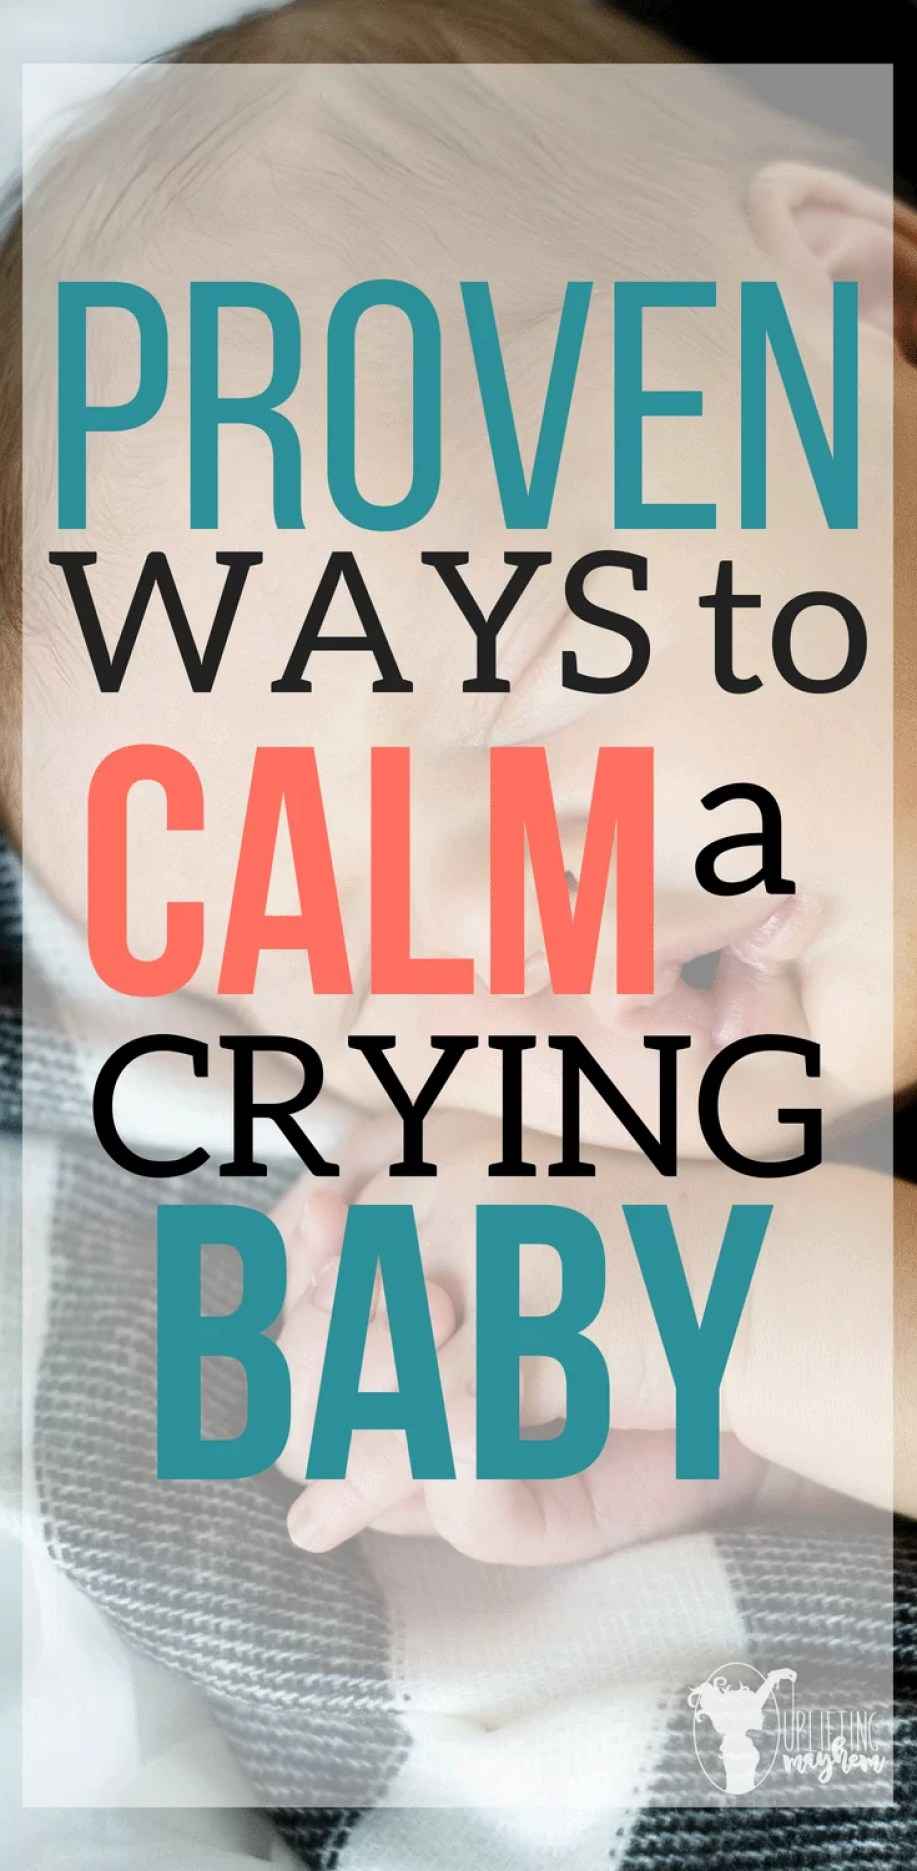 Fussy baby that cries a lot? Babies are a joy! When they are having a hard time and won't stop crying this can be frustrating! Here are proven ways to calm a crying baby